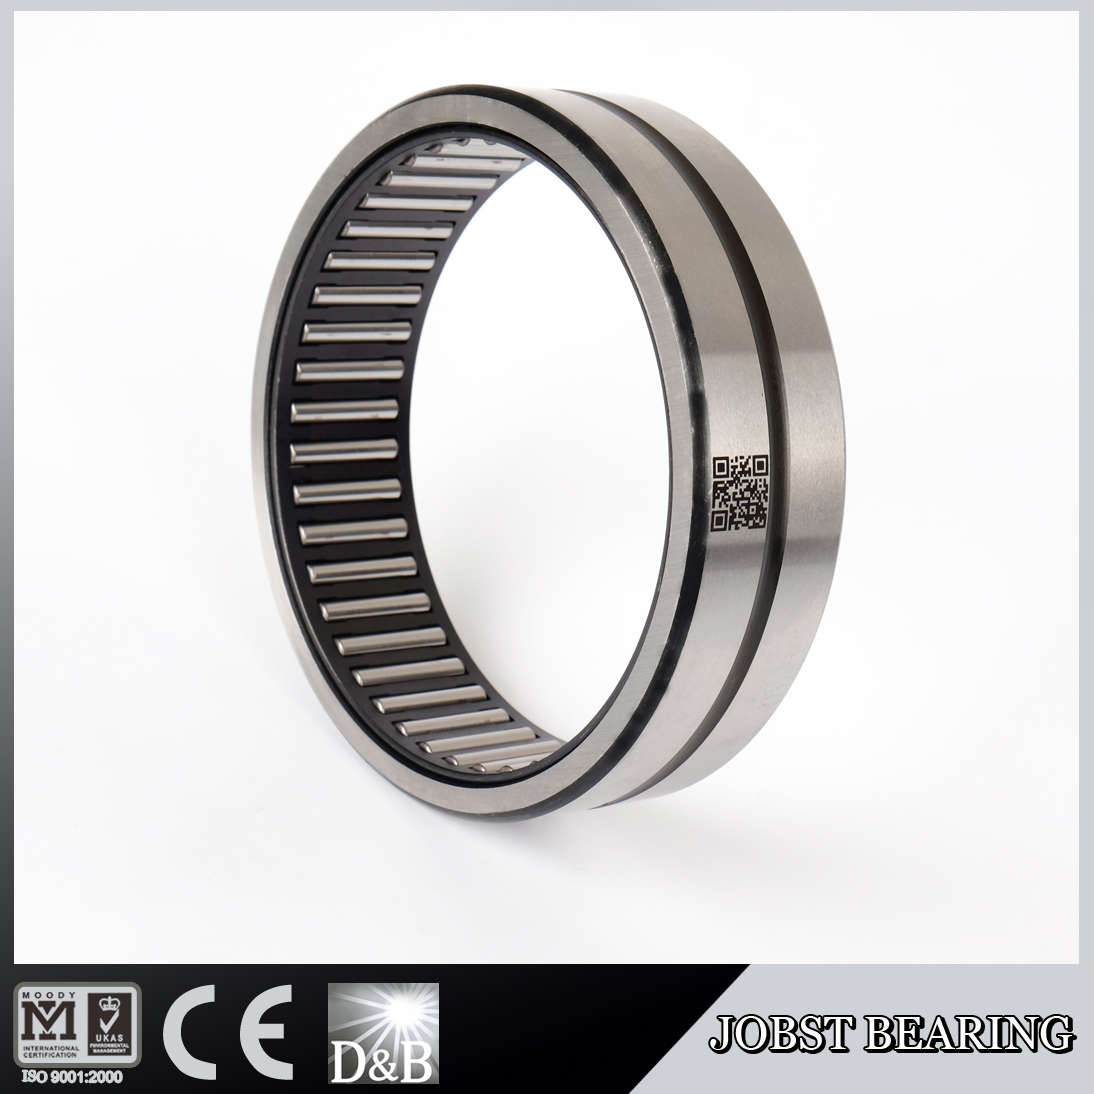 NSK bearings » IKO bearings, NTN …